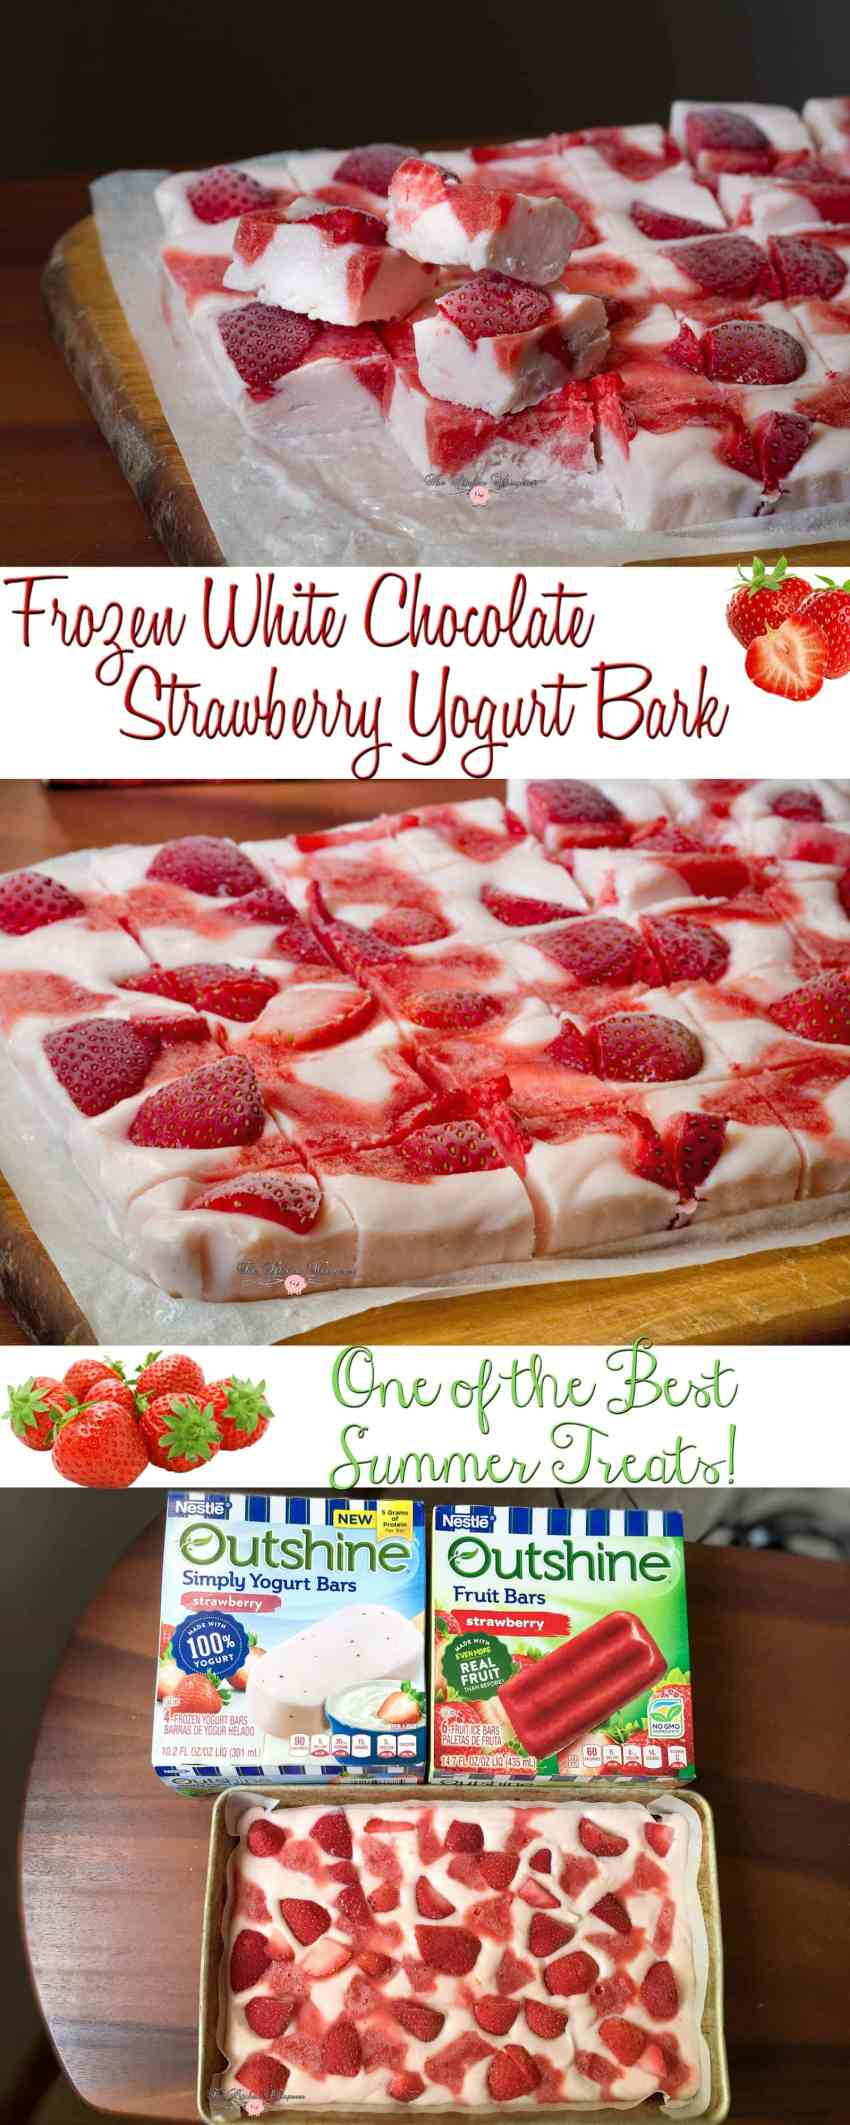 Frozen White Chocolate Strawberry Yogurt Bark Collage1